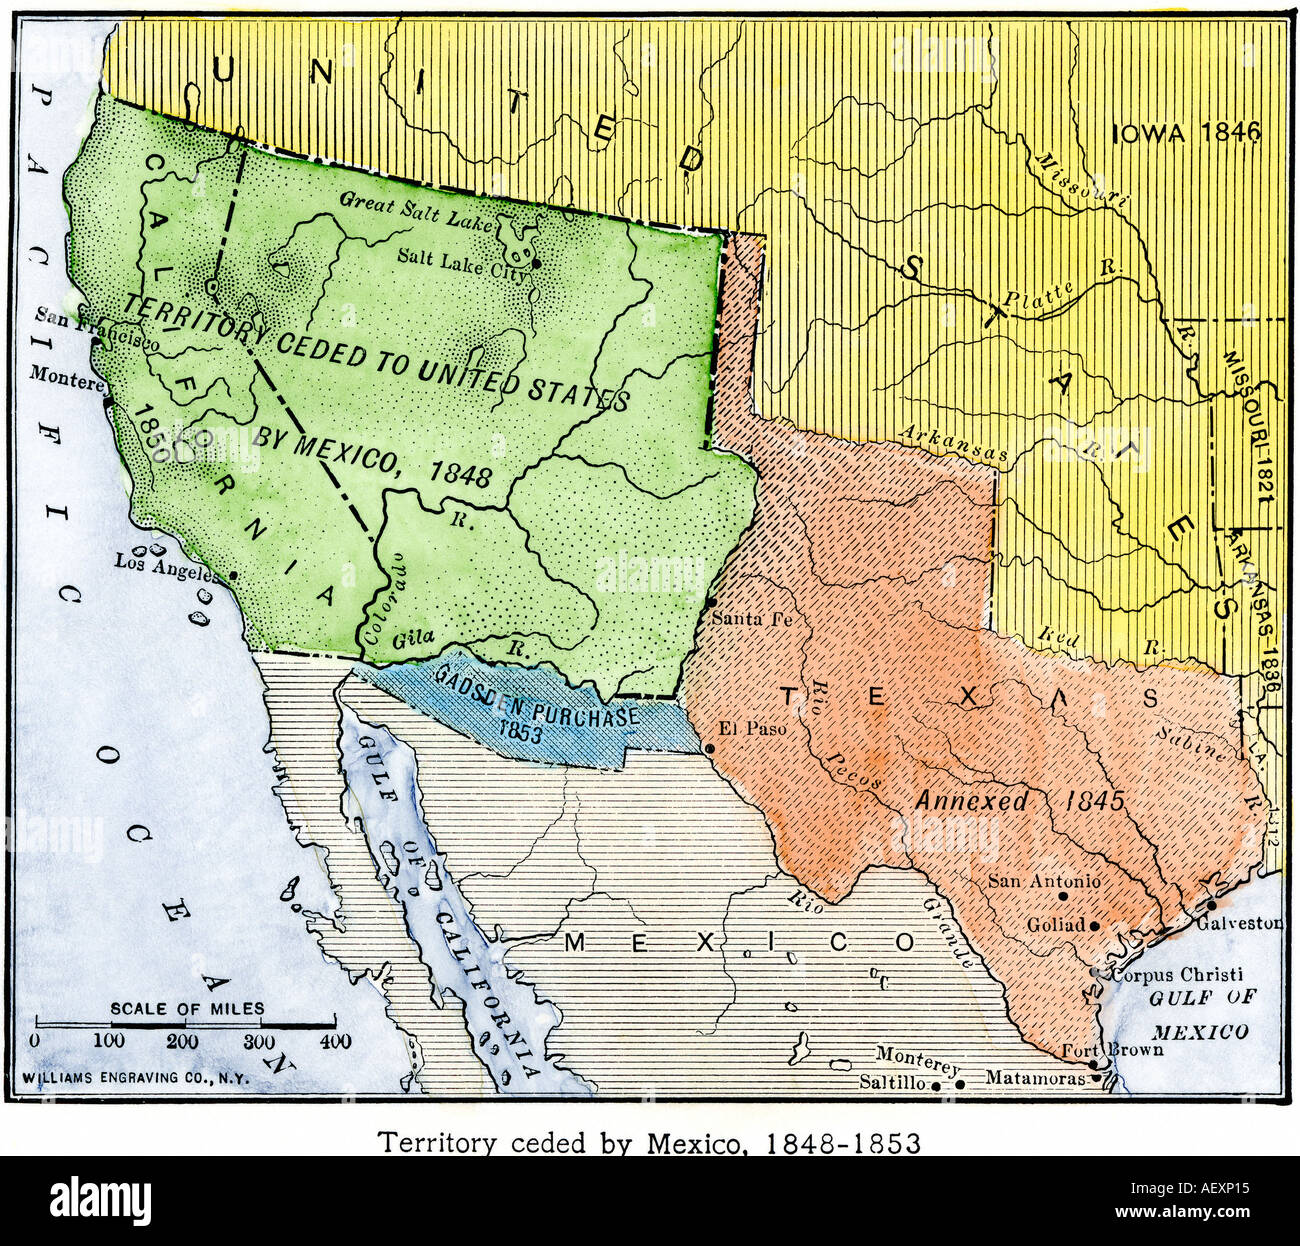 map of the territory ceded by mexico to the us after the mexican american war 1848 to 1853